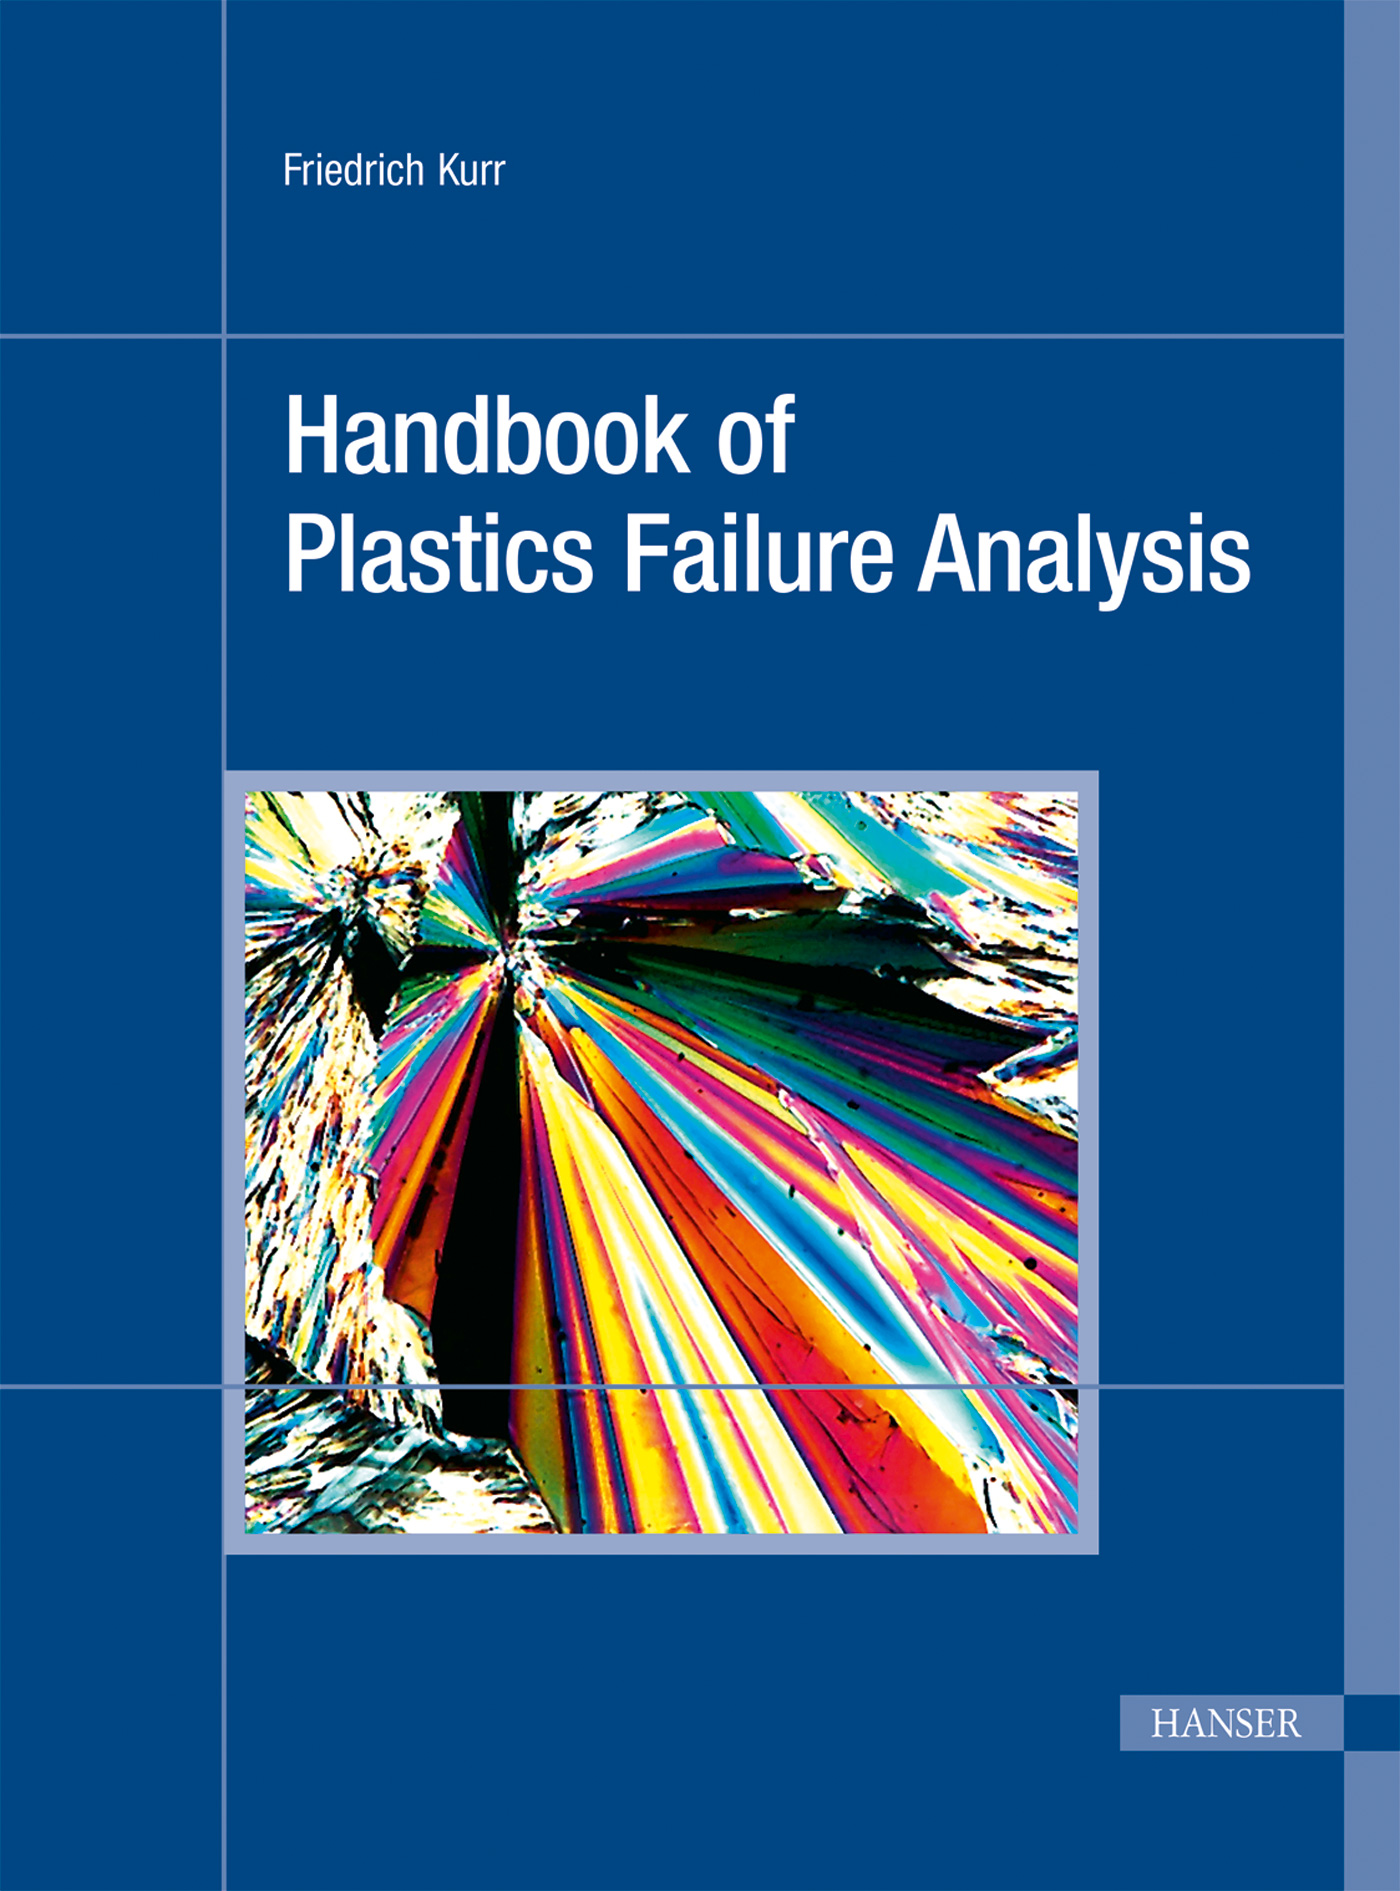 Kurr, Handbook of Plastics Failure Analysis, 978-1-56990-519-7